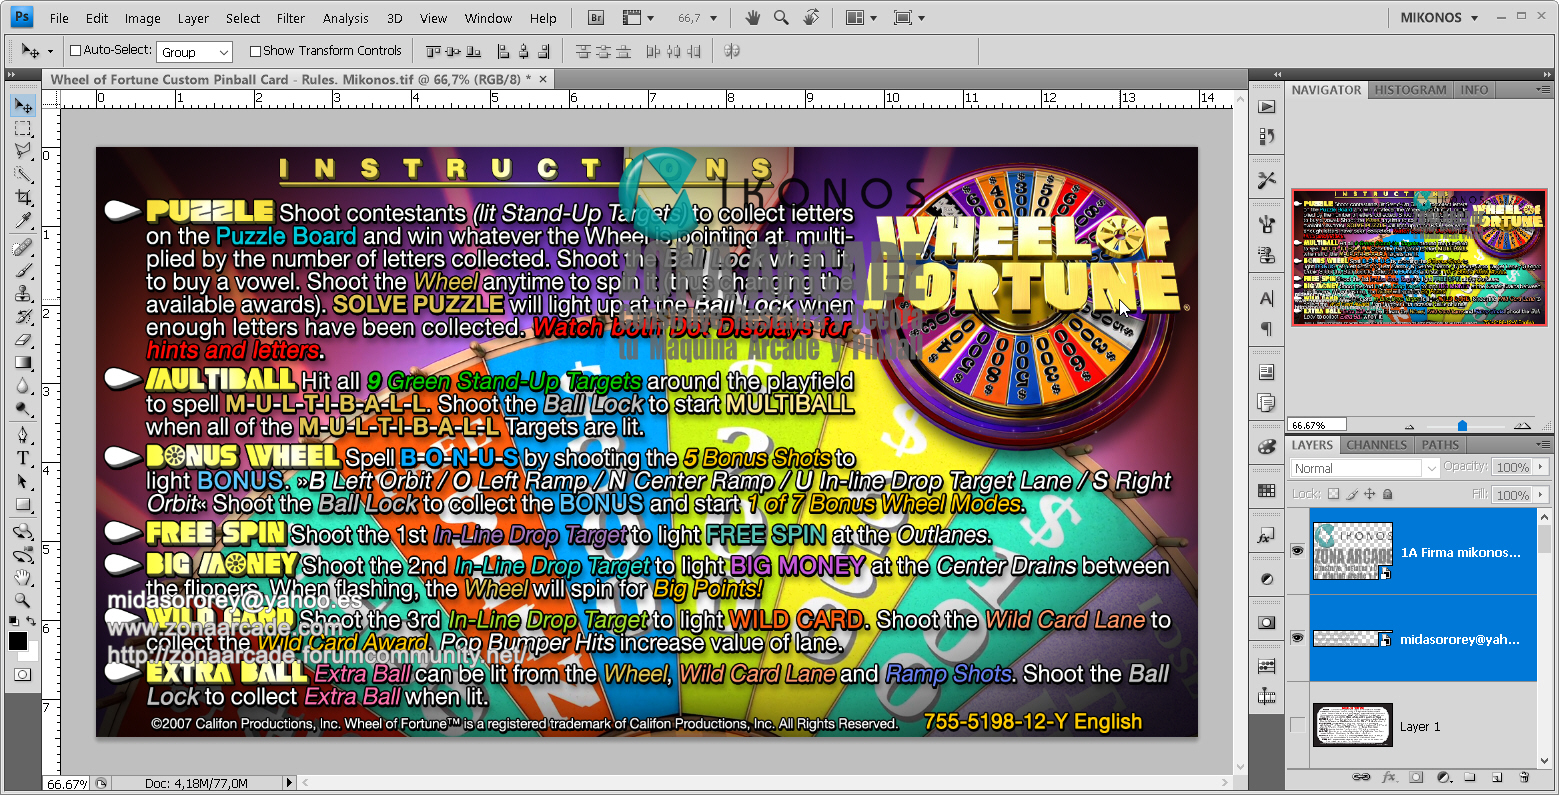 Wheel of Fortune Pinball Card Customized - Rules. Mikonos1